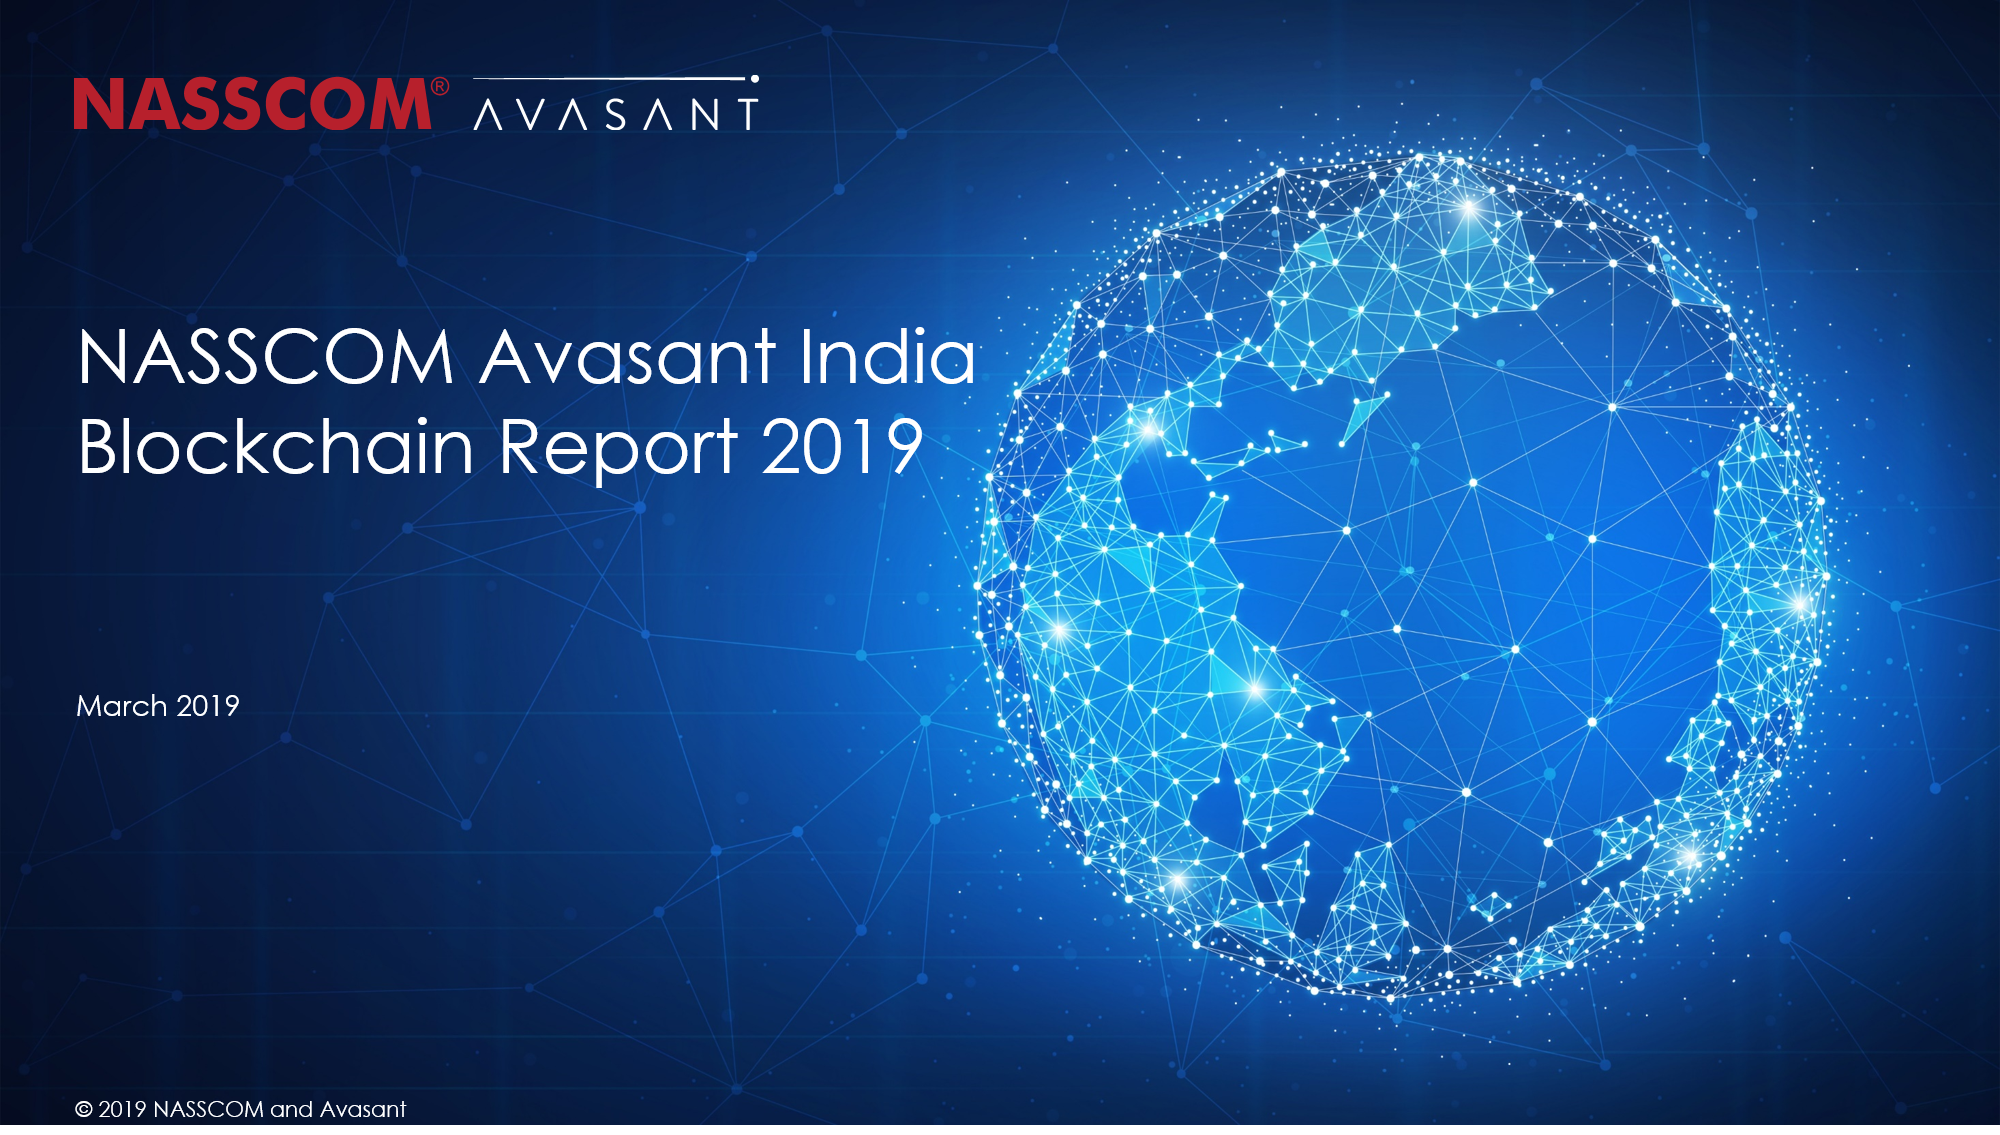 AVASANT-NASSCOM India Blockchain Report 2019